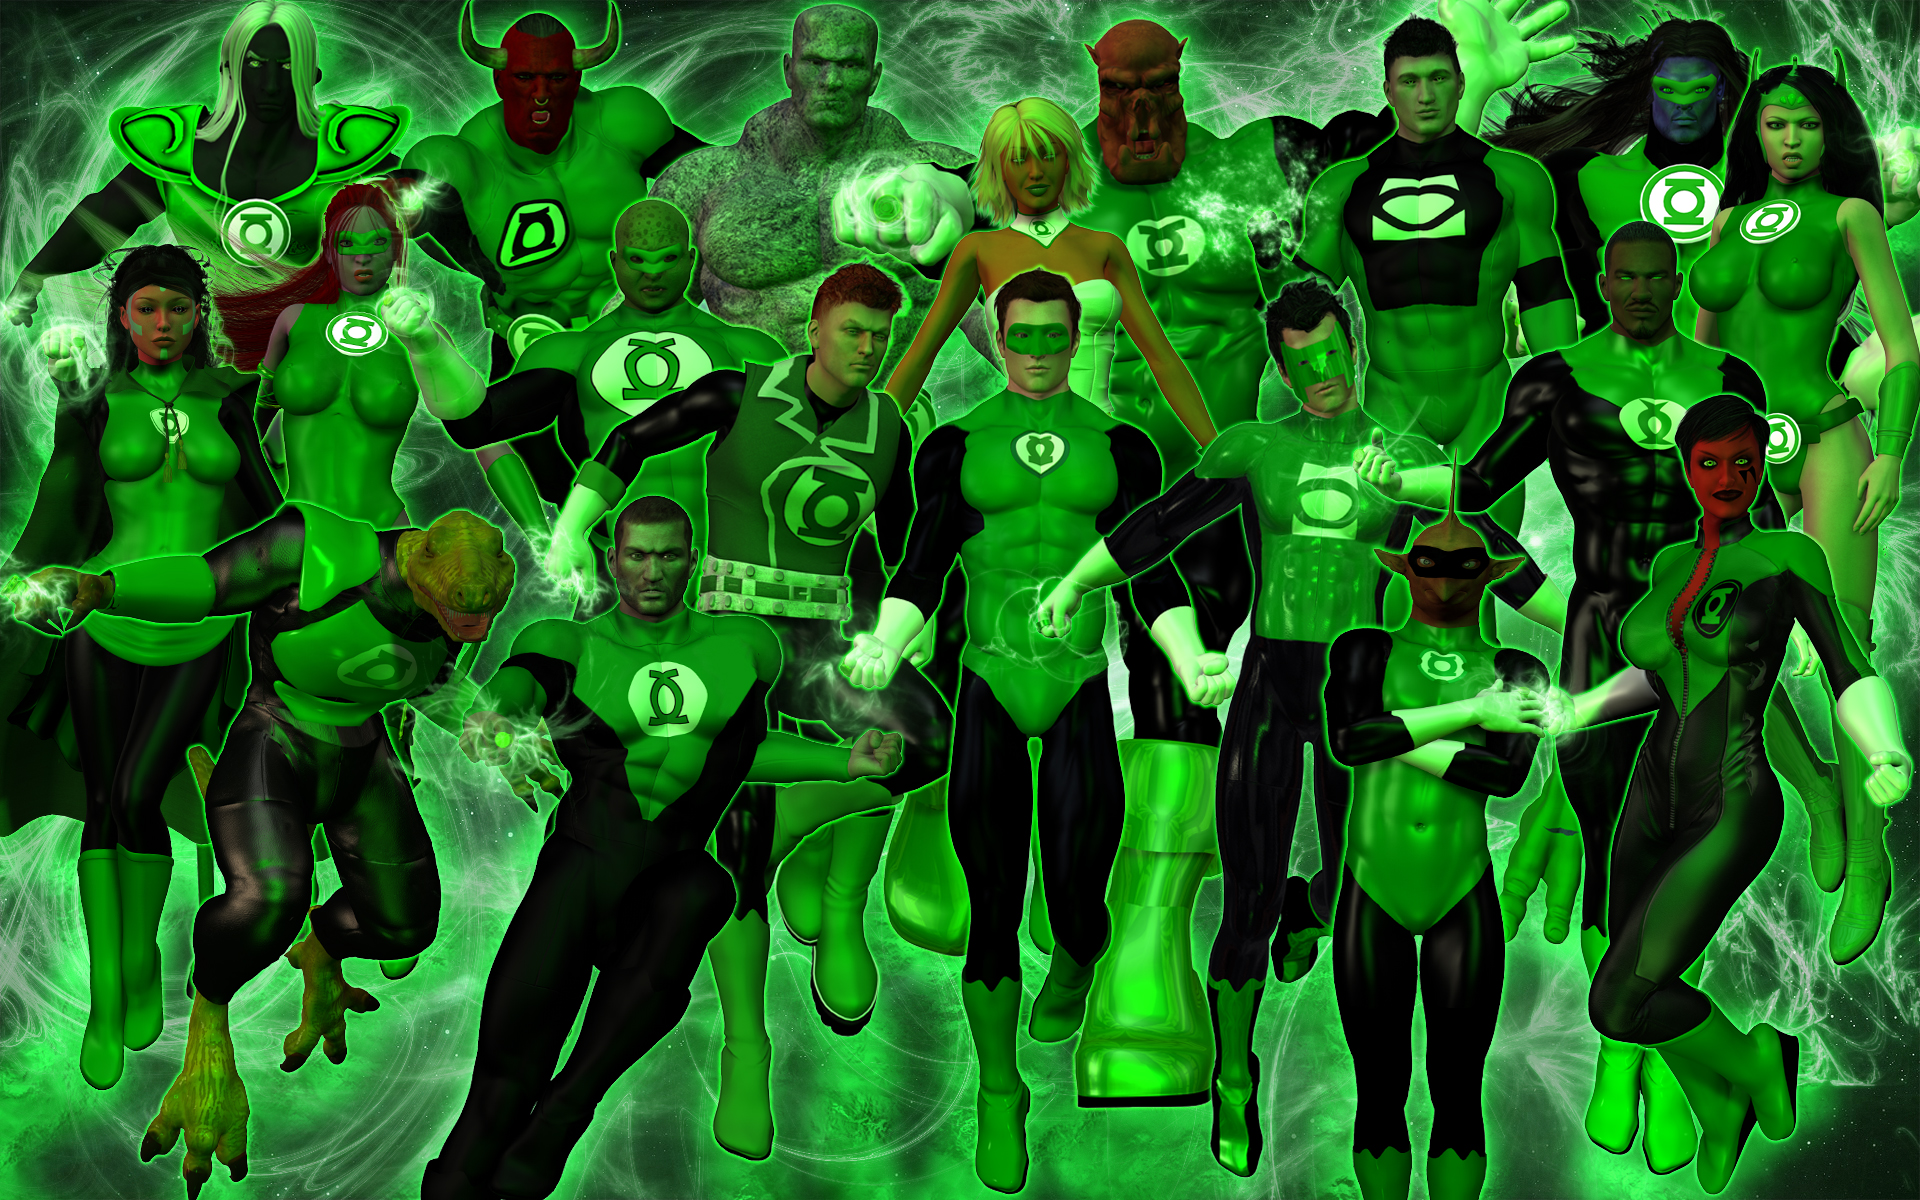 Green Lantern Corps Wallpaper The green lantern corps by 1920x1200